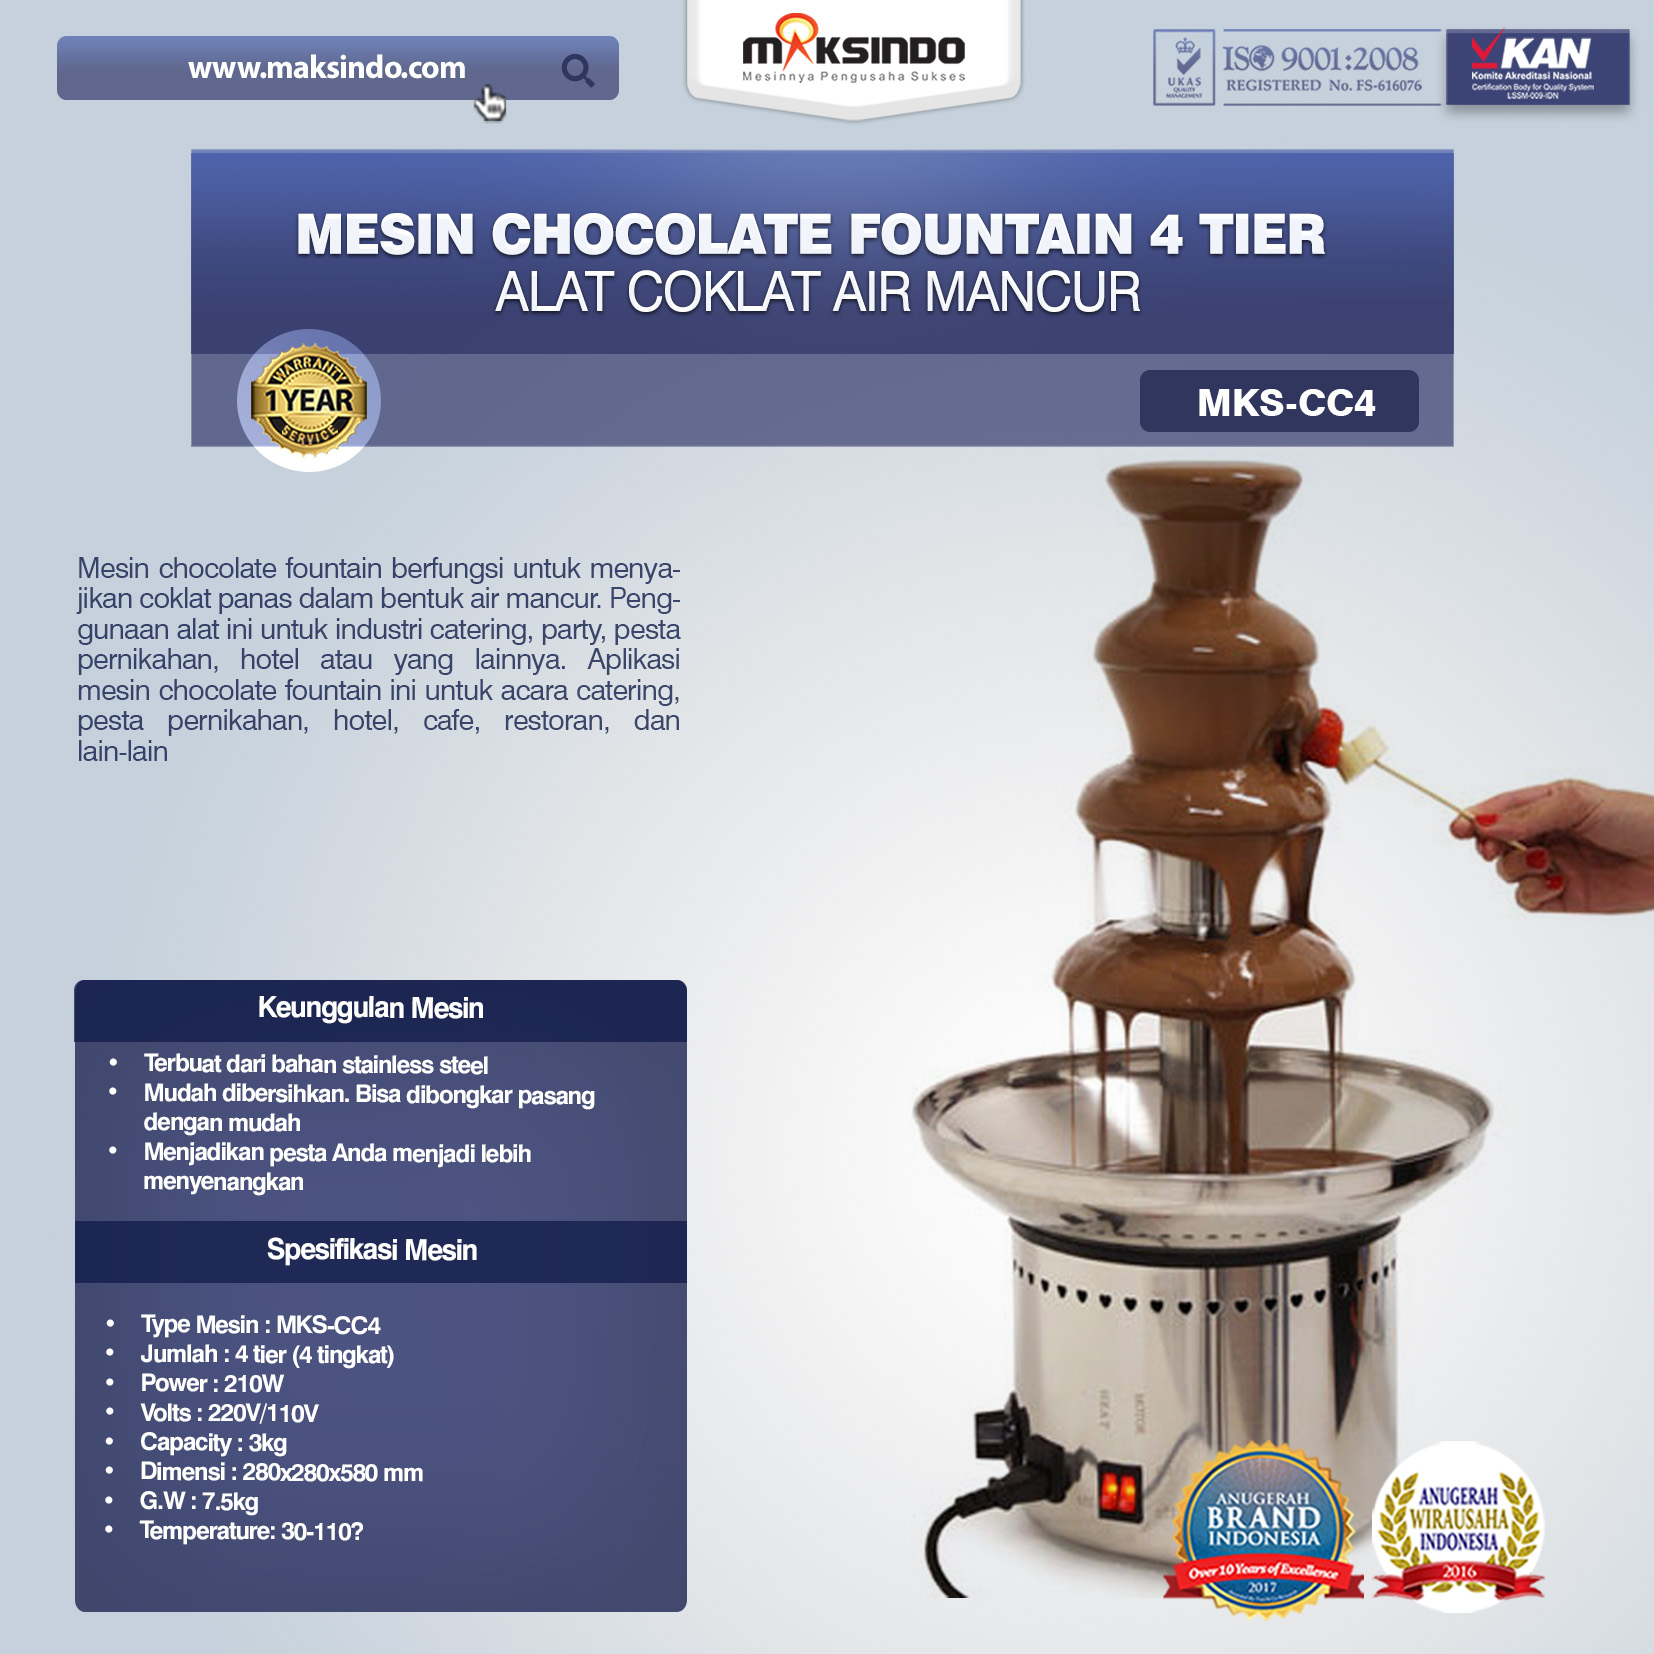 Mesin Chocolate Fountain 4 Tier MKS-CC4 Alat Coklat Air Mancur